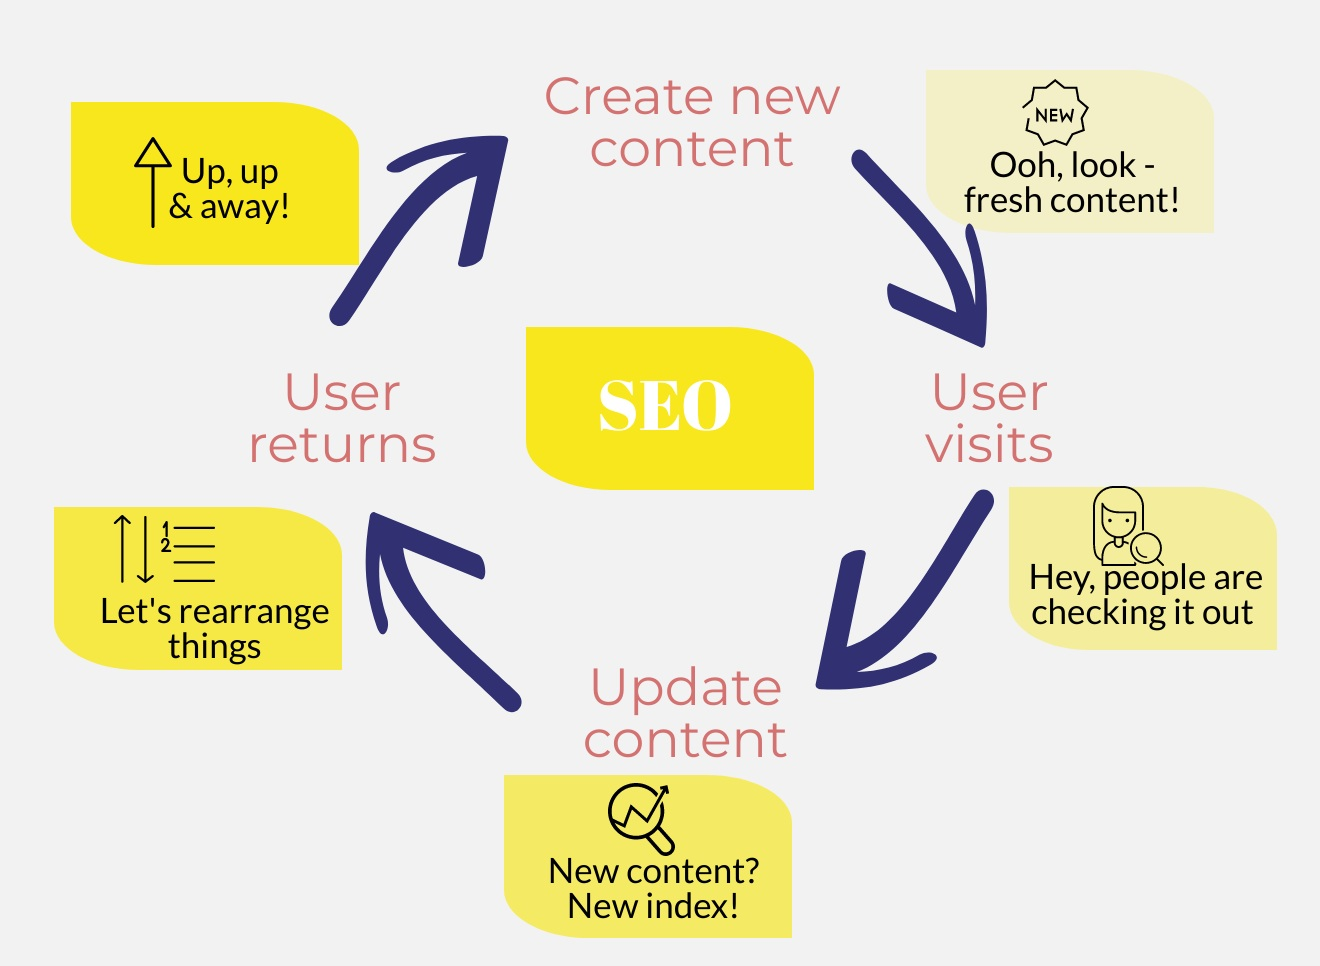 - Rather than trying to trick Google's algorithm, improve your search ranking by continuously adding and updating content.